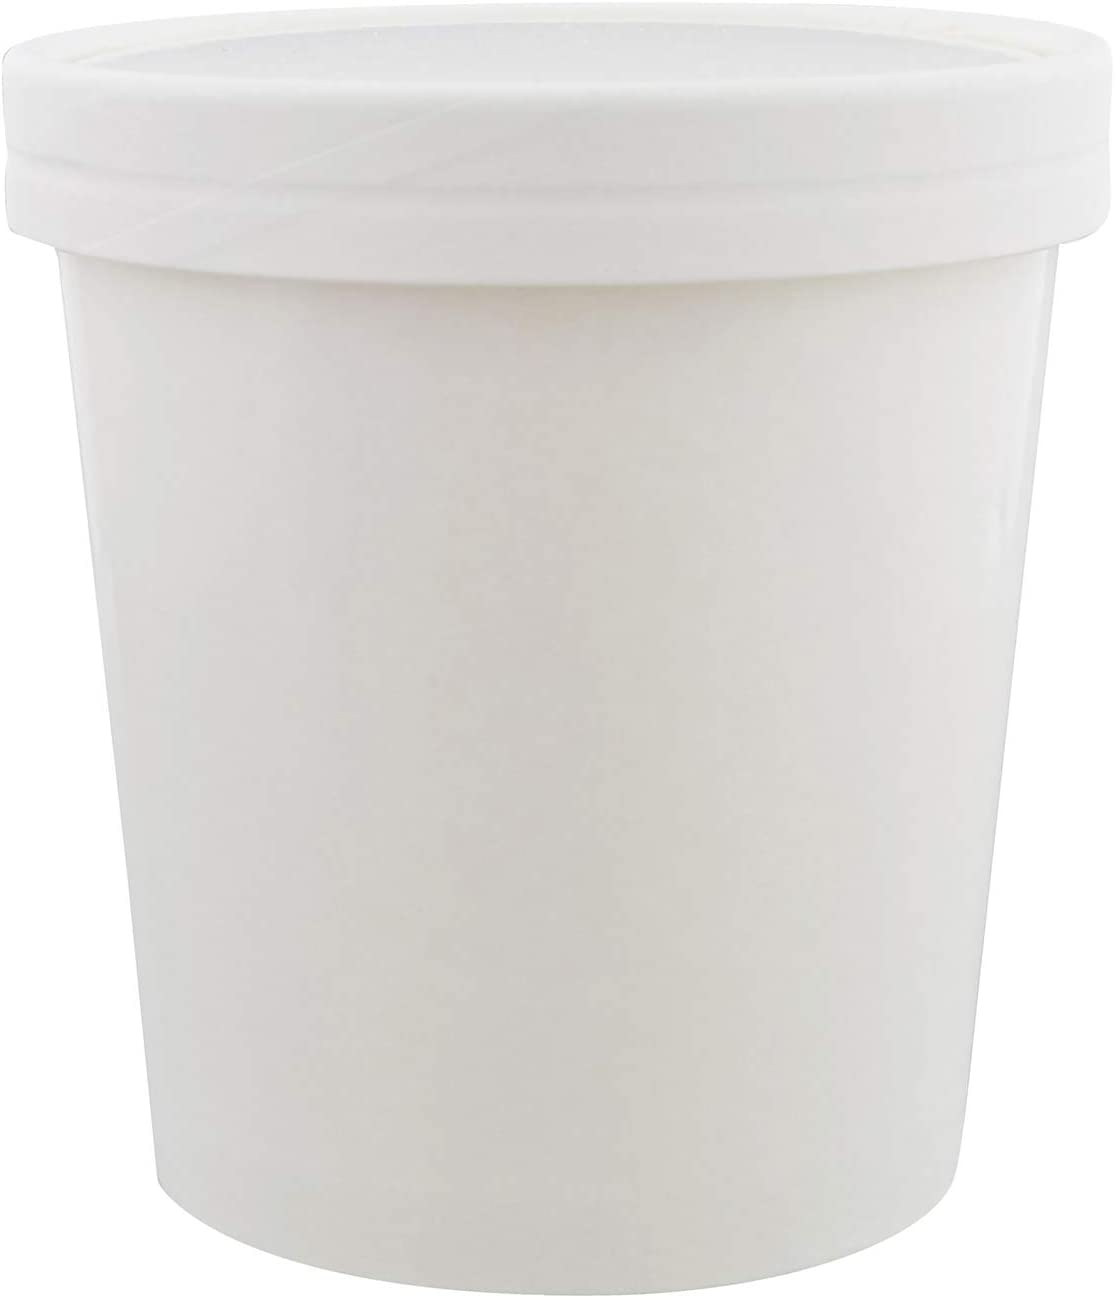 Special T Ice Cream Tubs with Lids – 16 Ounce Ice Cream Containers, Homemade Ice Cream Storage Containers, 25 Pack